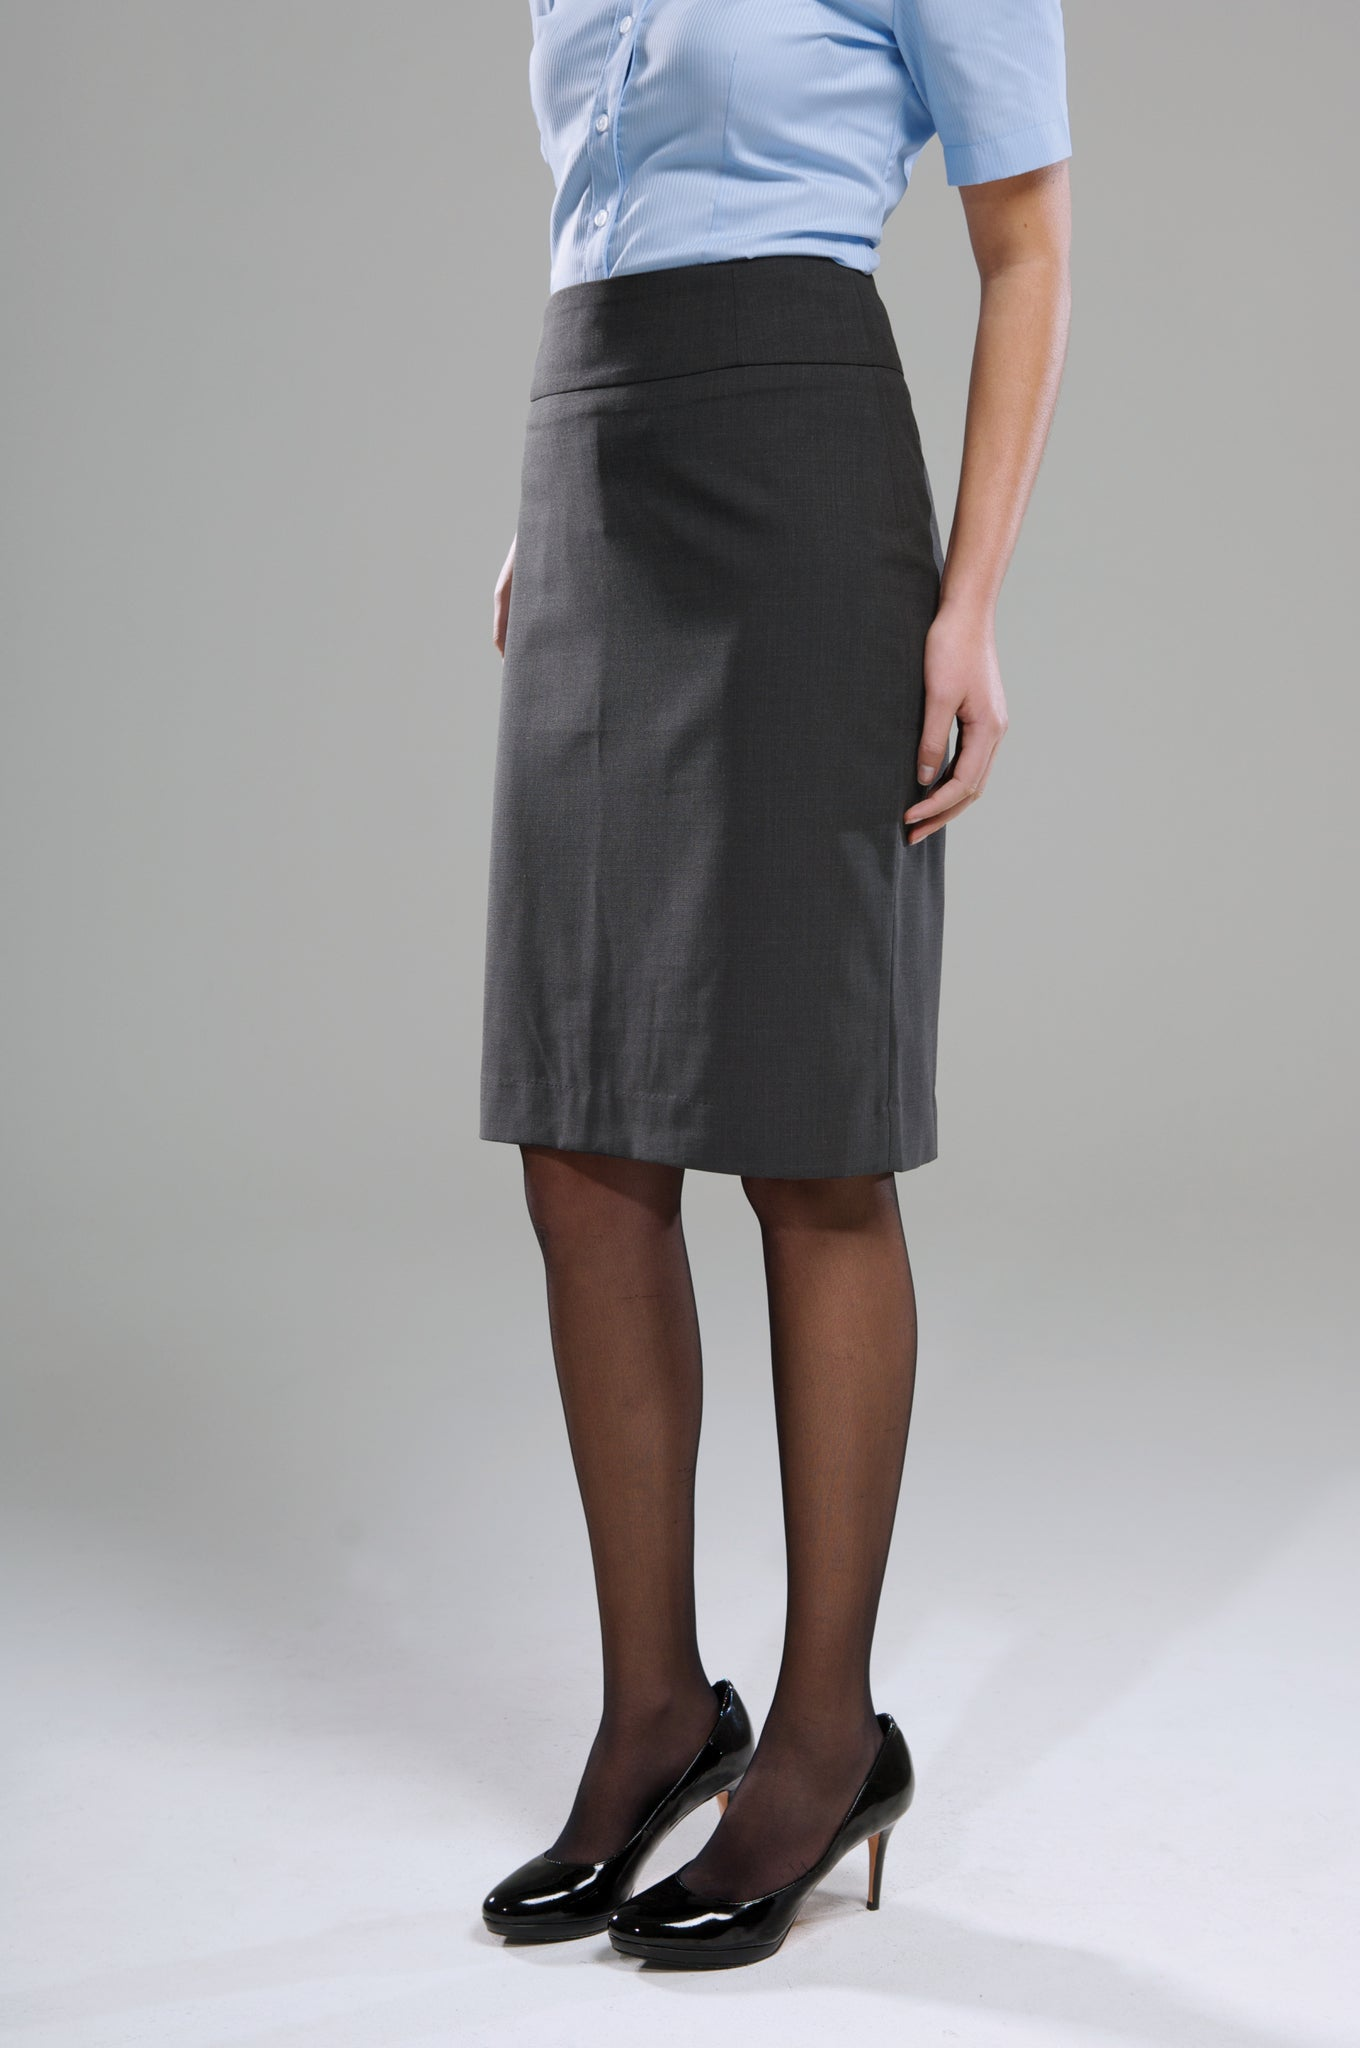 Polywool Z Stretch Ladies Pencil Skirt - Charcoal